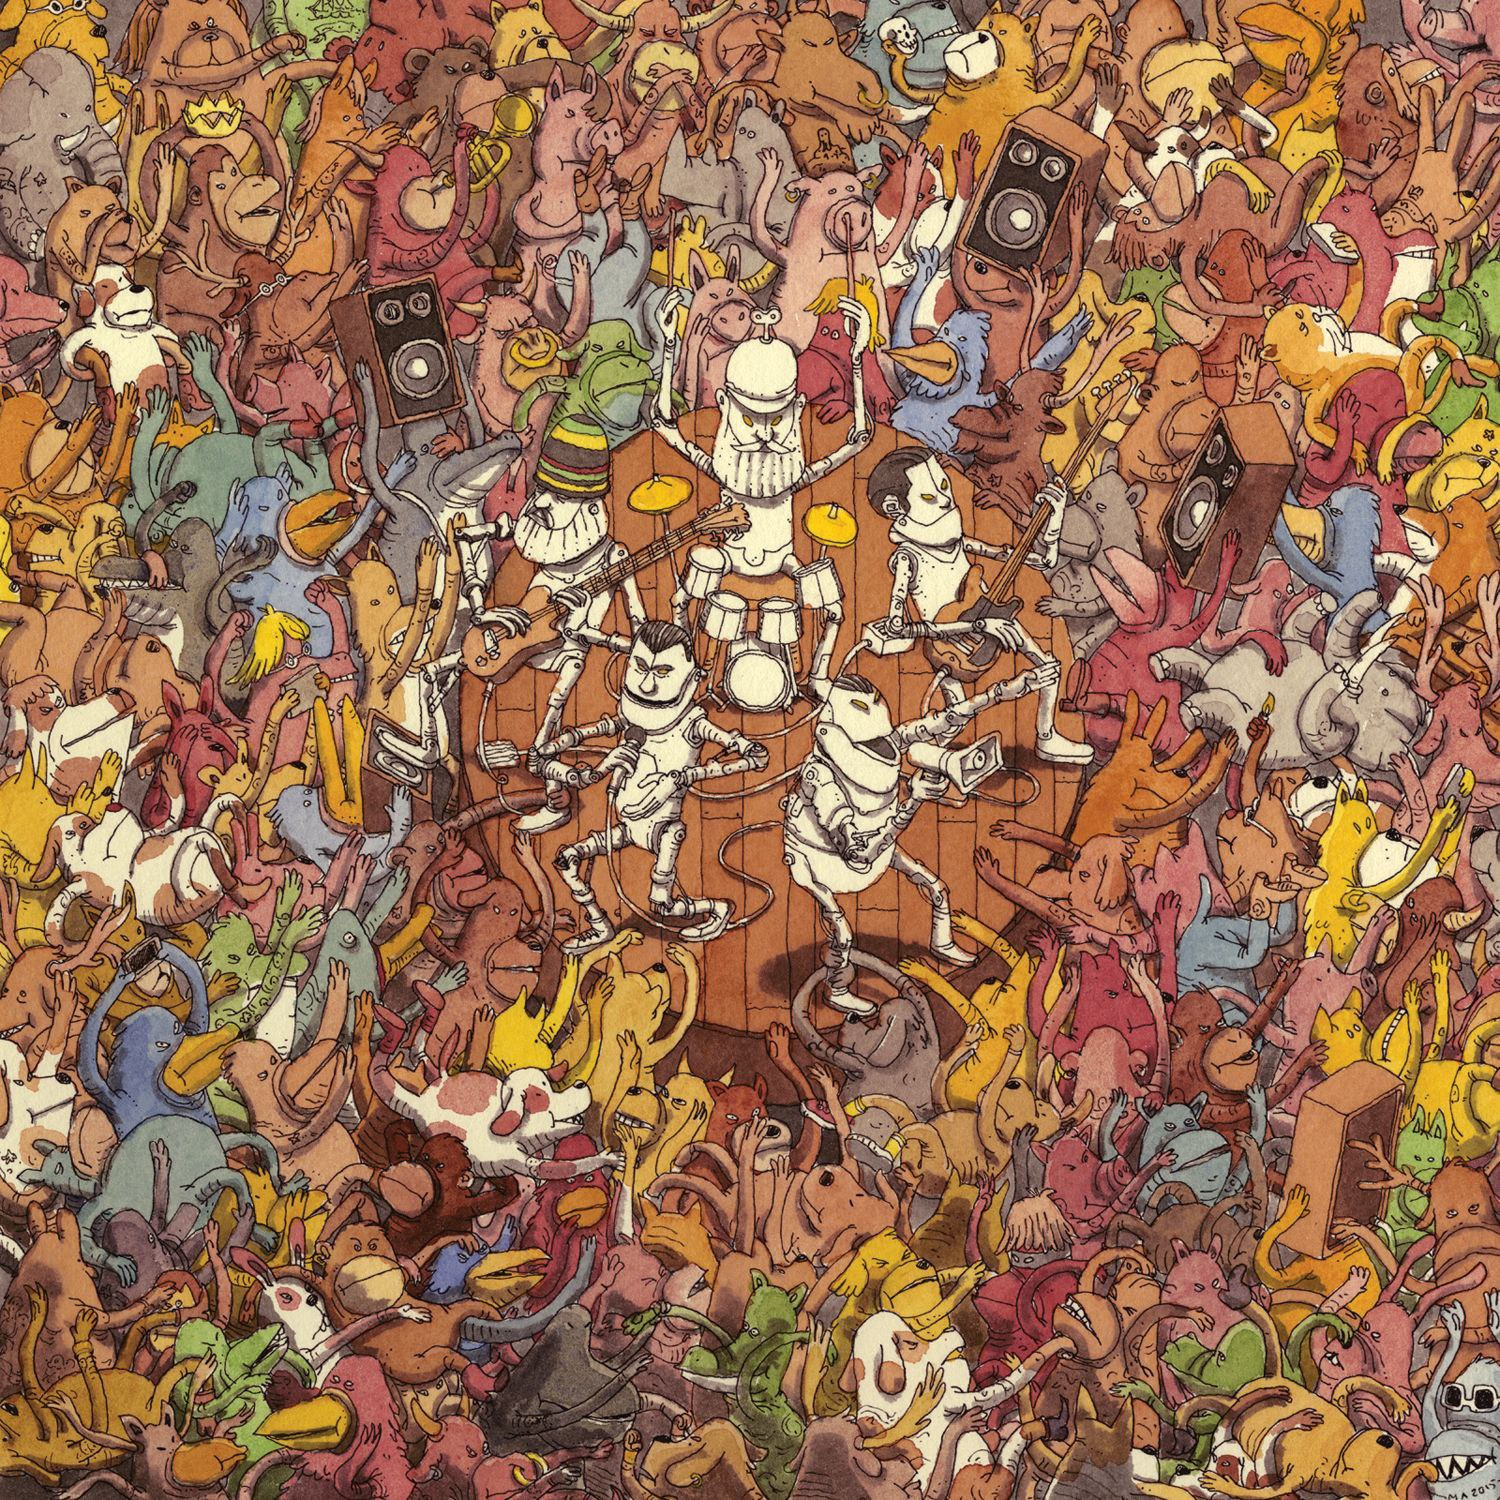 Dance Gavin Dance - Carl Barker [single] (2016)